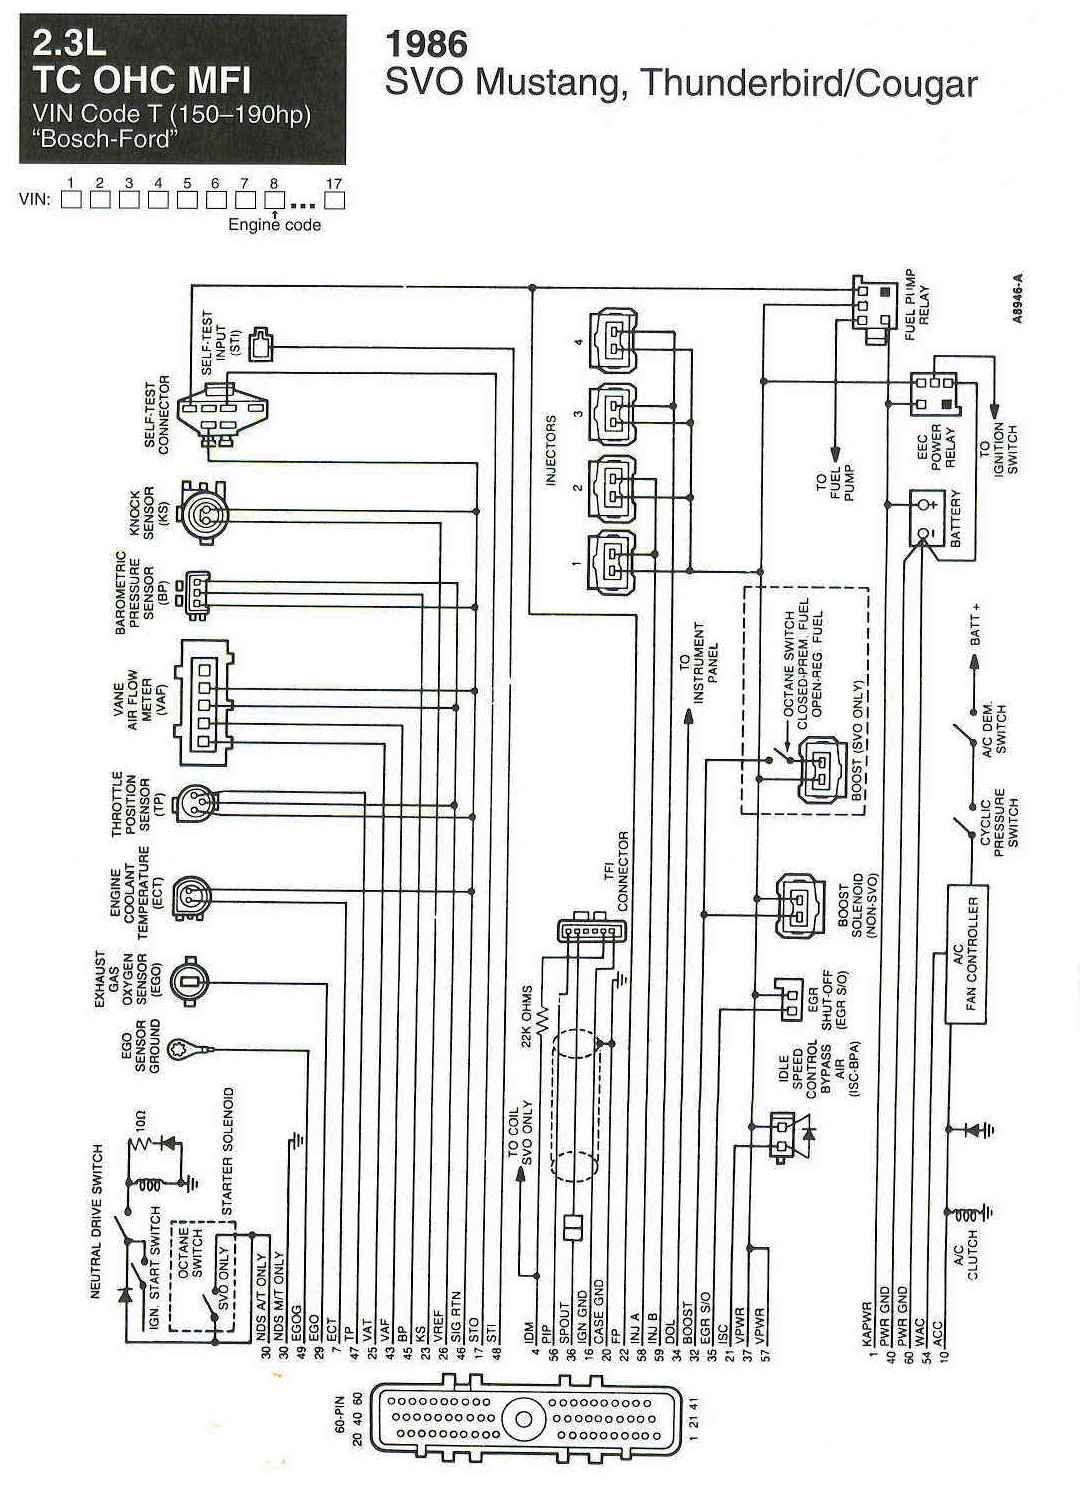 69858d1242761722 wiring diagrams svo pe pinout wiring diagrams for svo ford mustang forum tech authority wiring diagrams at n-0.co